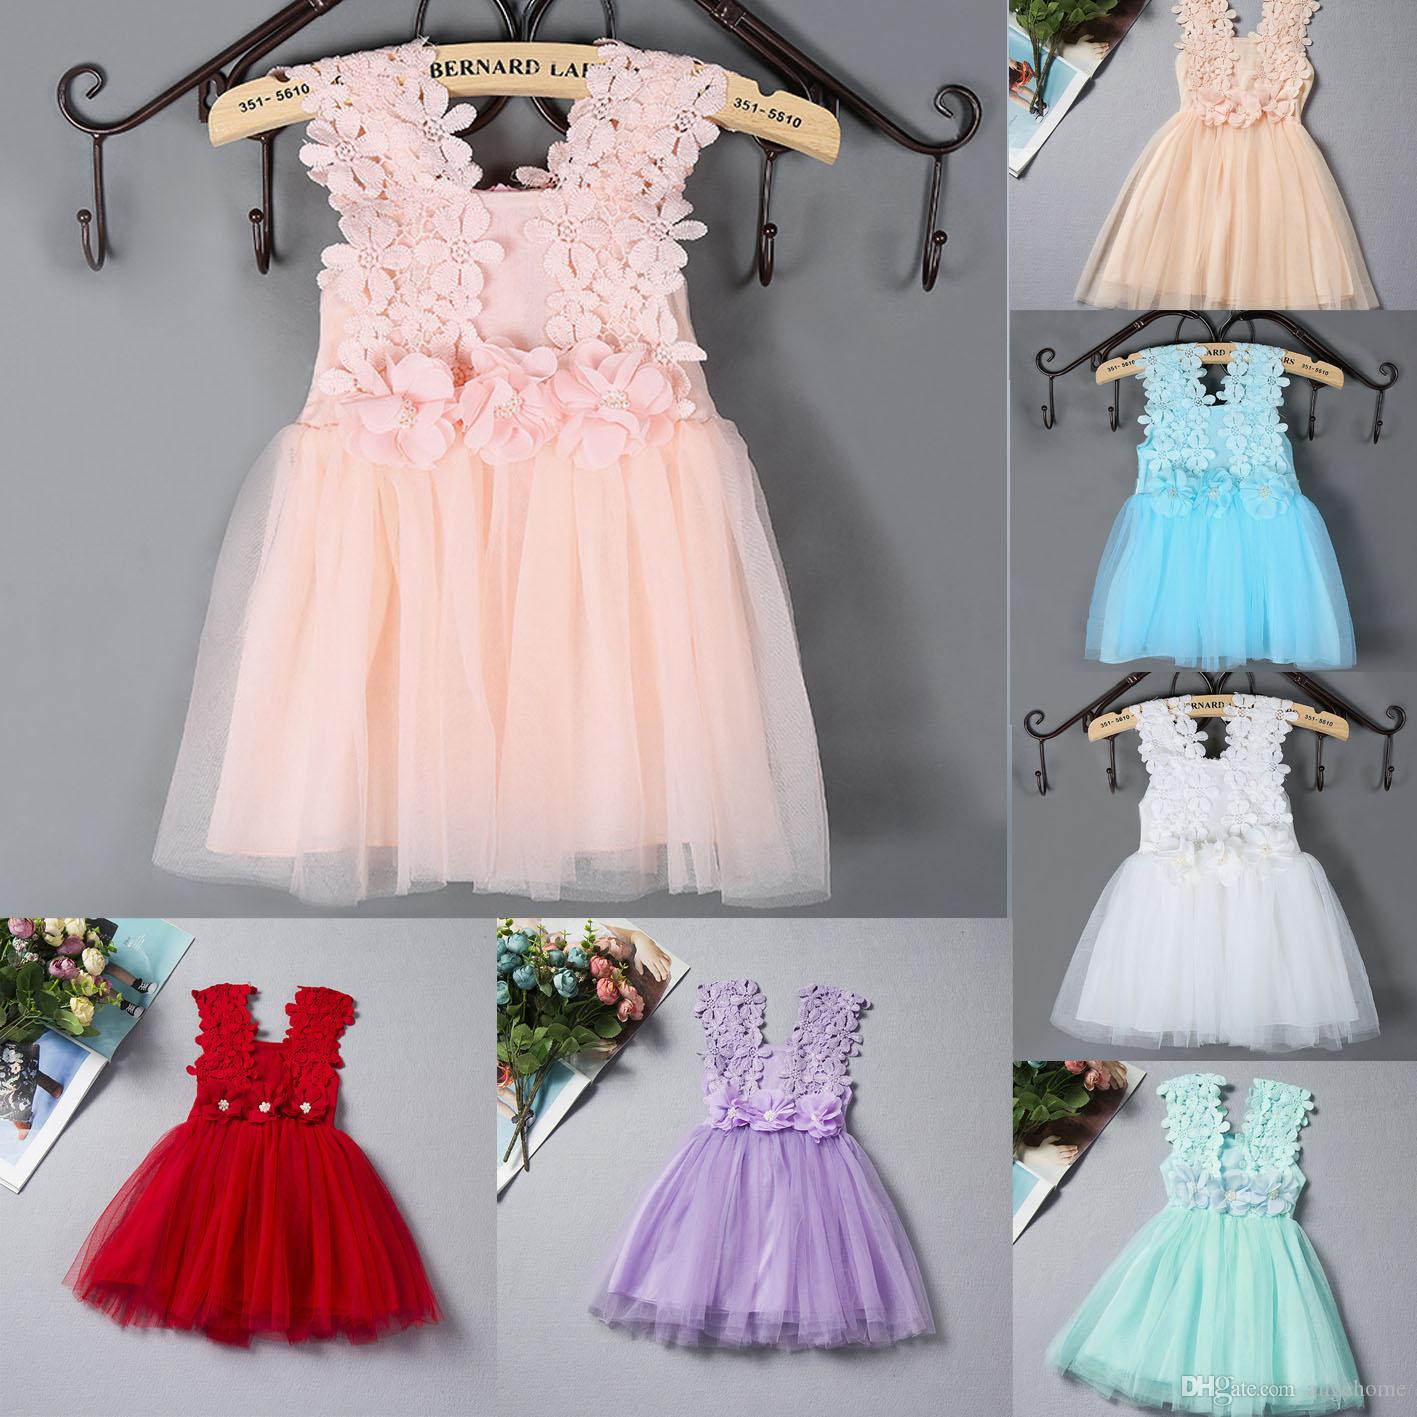 Best 2016 Summer Baby Girls Clothes Lace Crochet Tulle Tutu Dresses